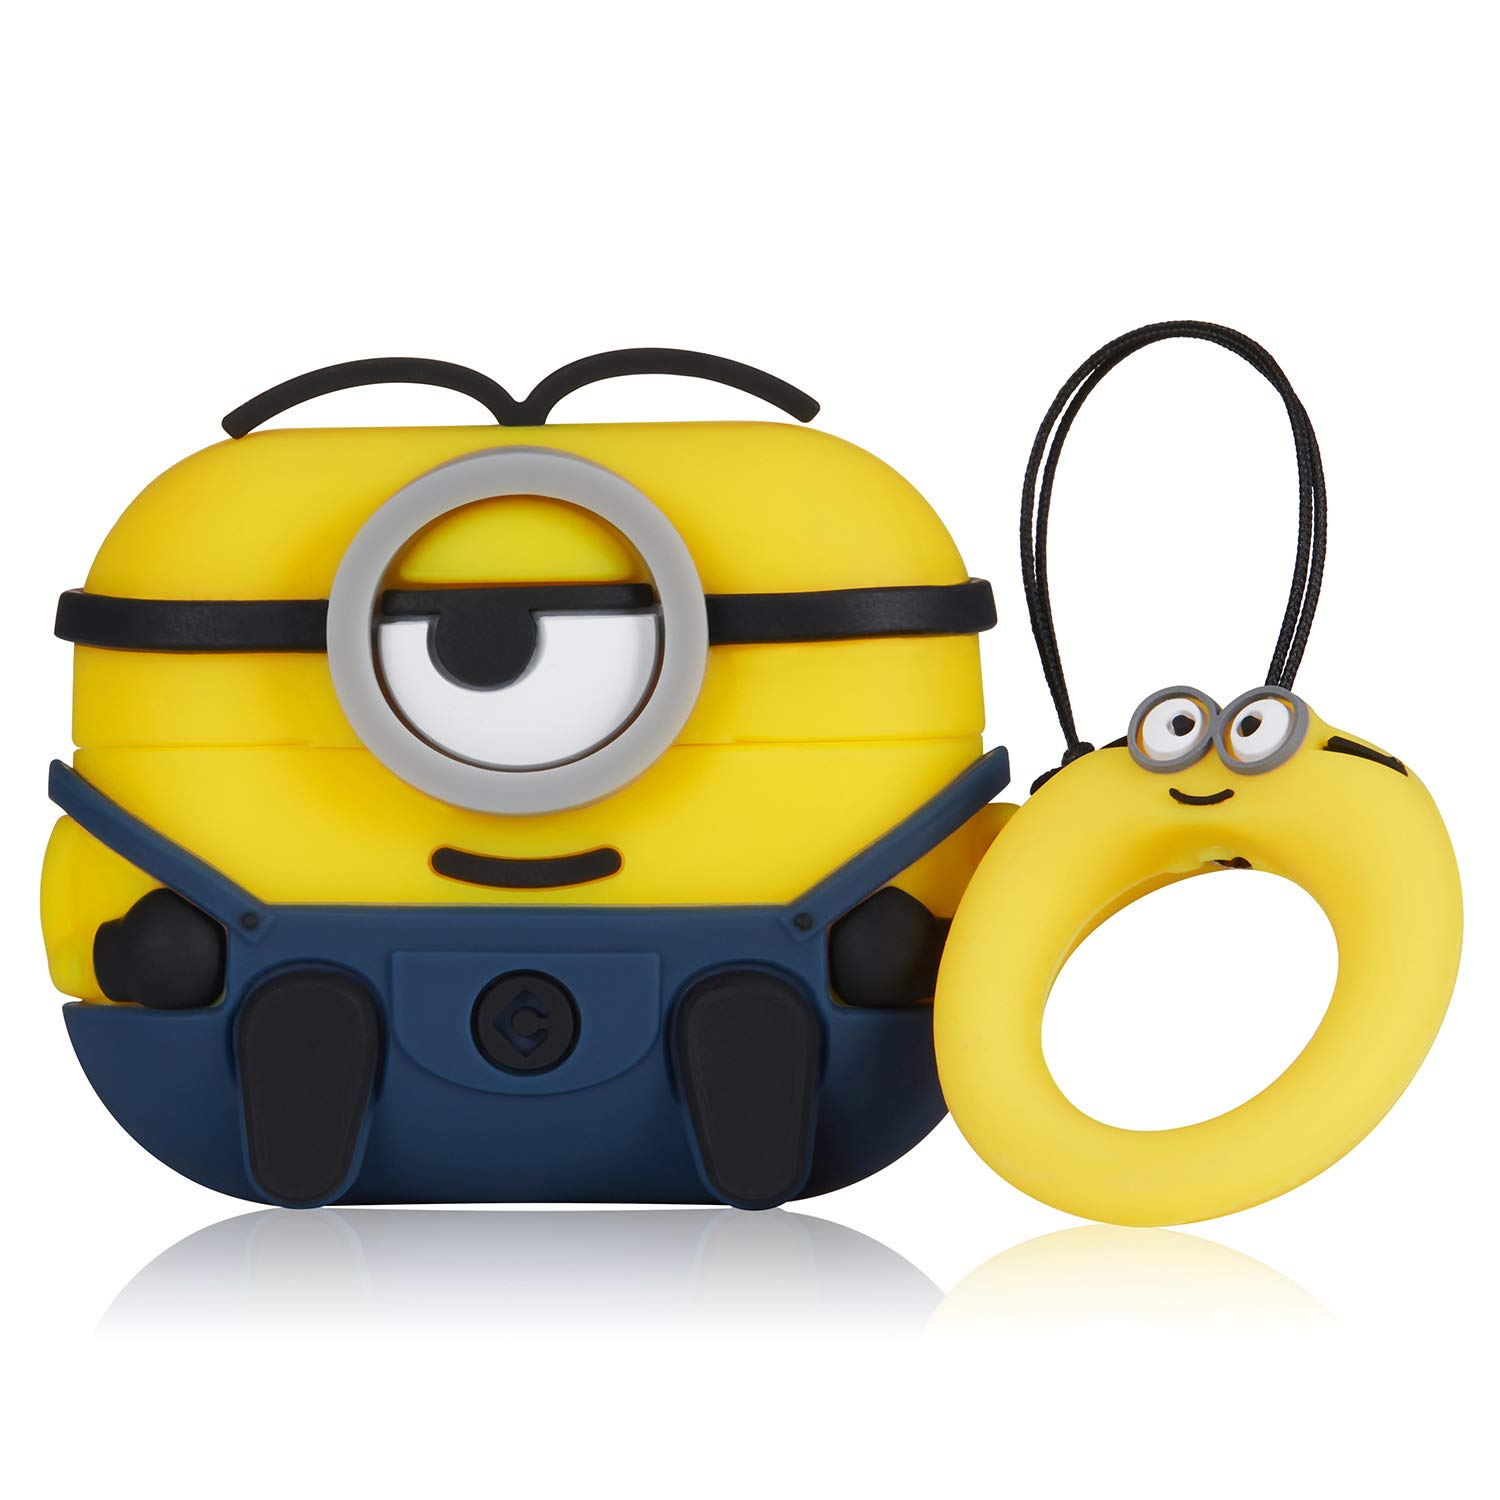 Coralogo Case for Airpods Pro/3 Cute, 3D Animal Fashion Character Soft Silicone Cartoon Airpod Skin Funny Fun Cool Keychain Design Kids Teens Girls Boys Cover Cases Air pods 3 (Dark Blue One Eye)